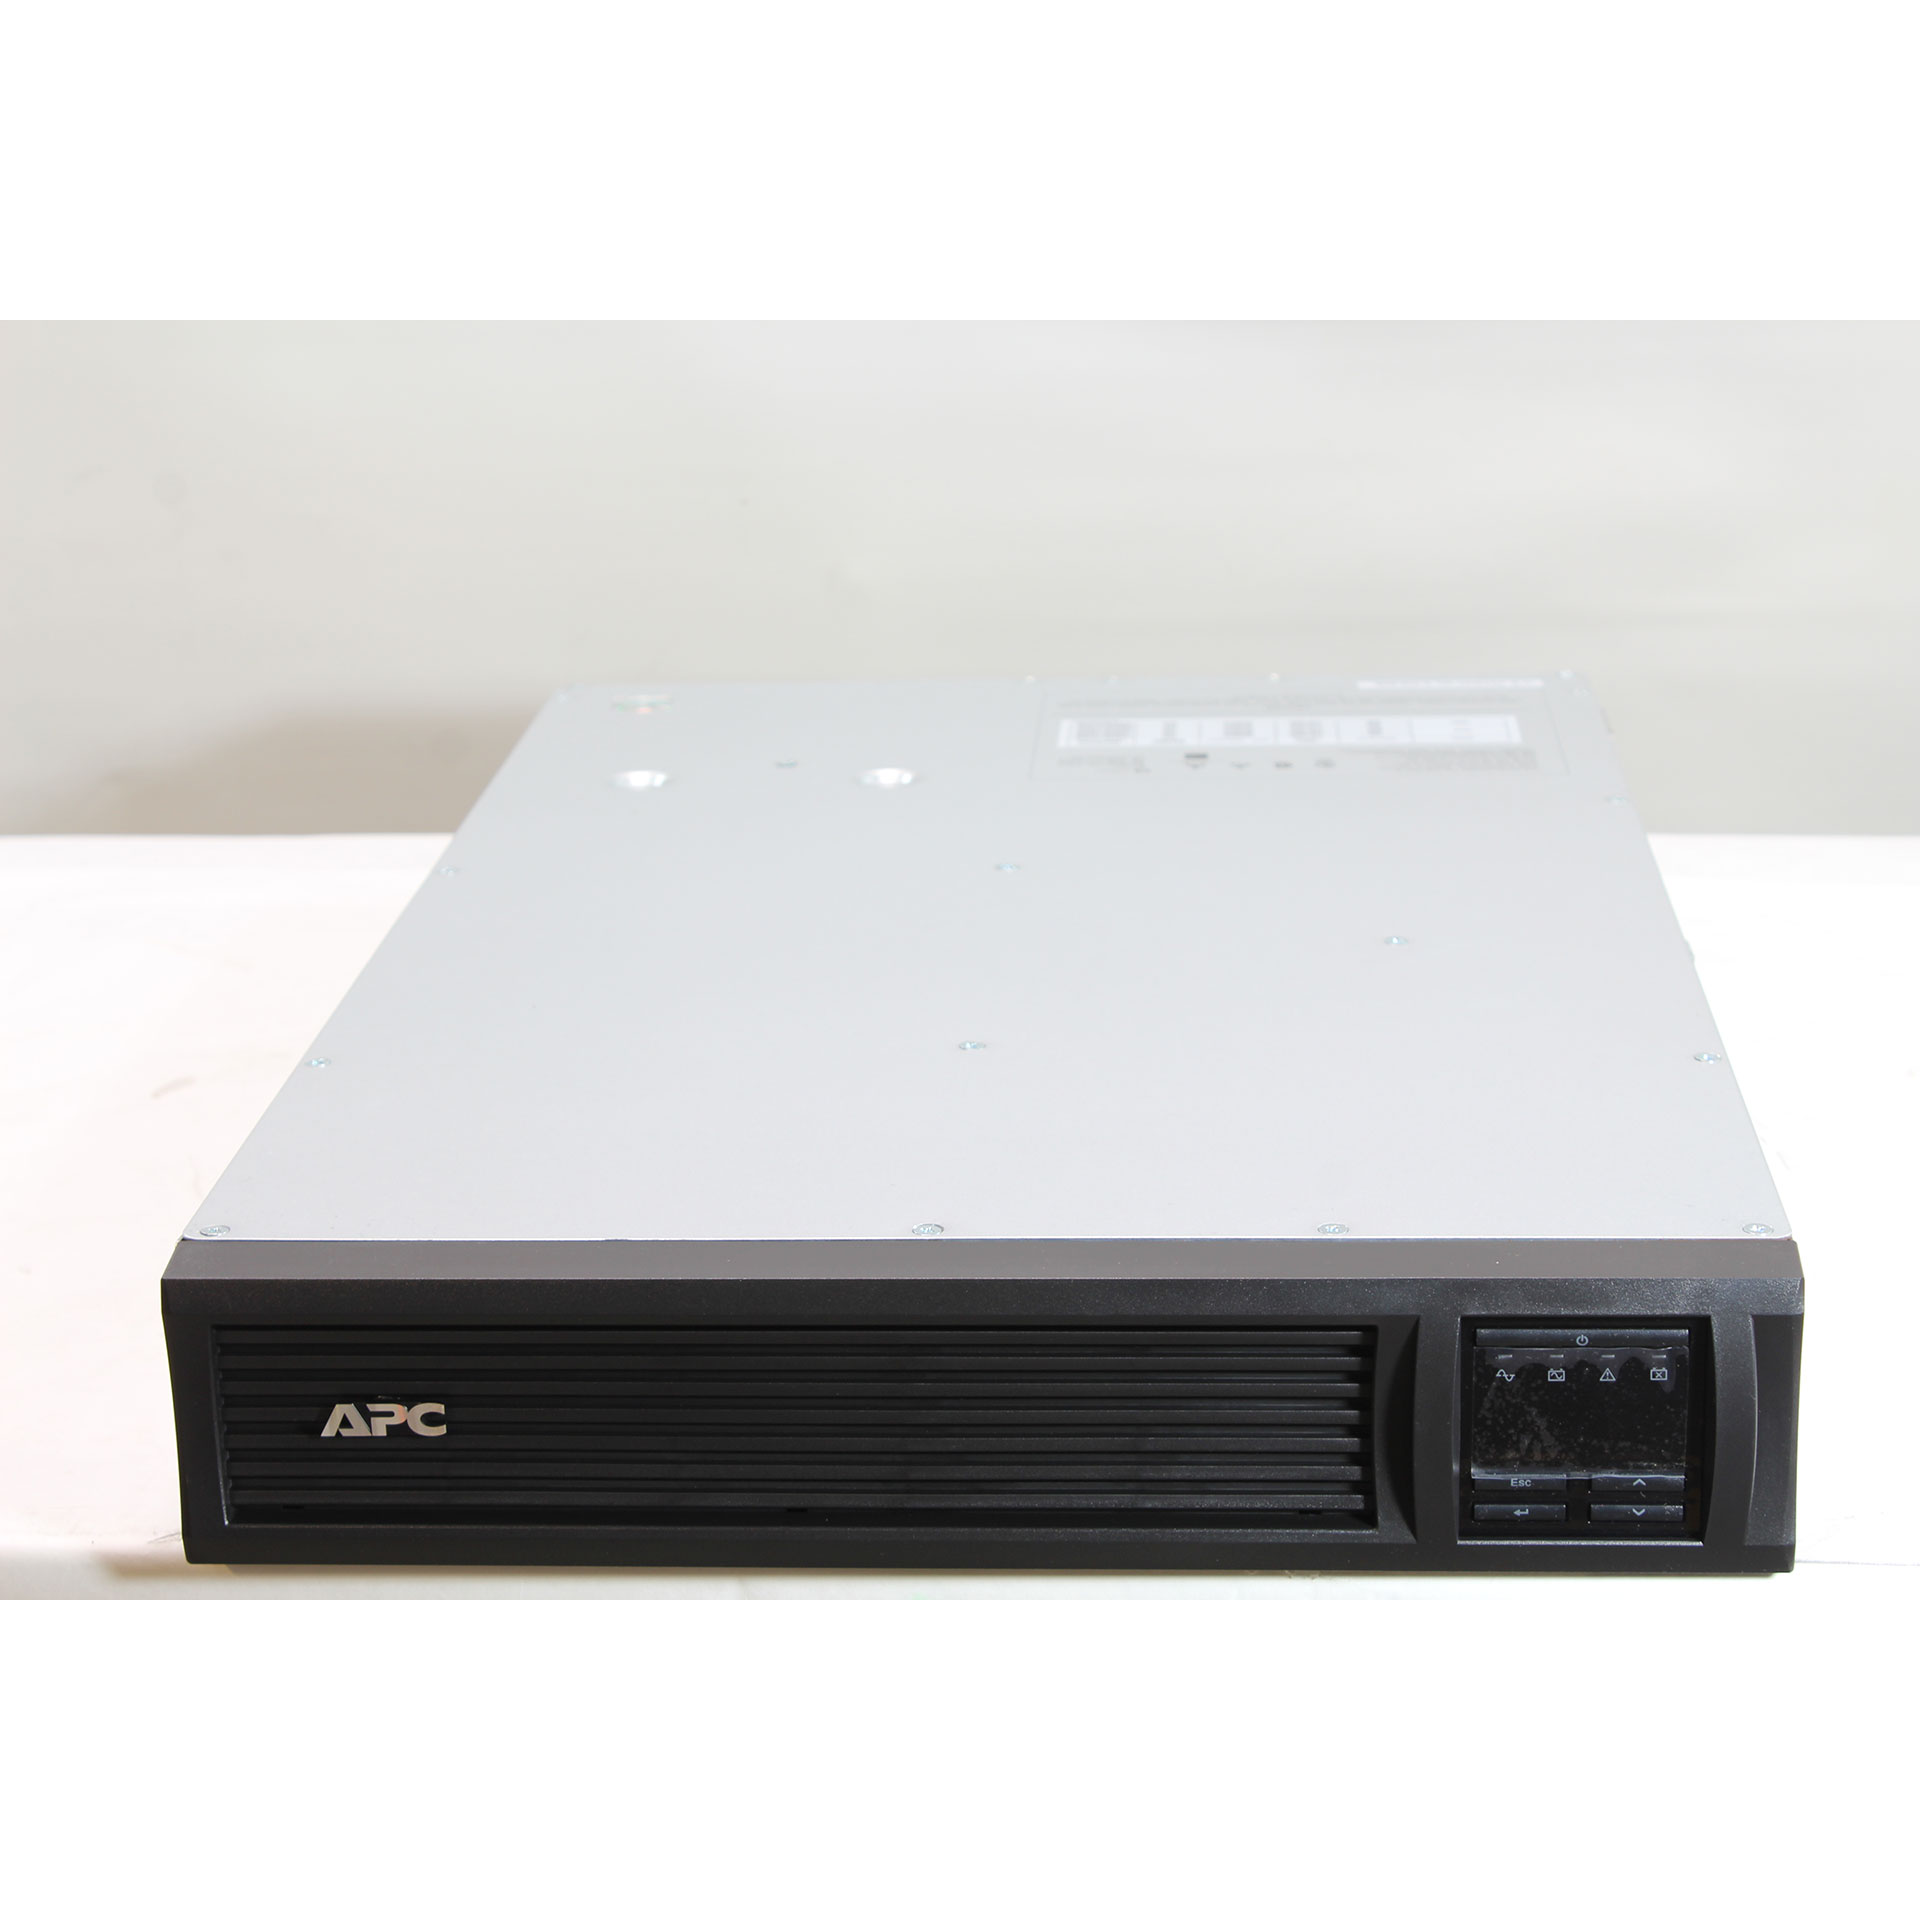 APC Smart-UPS 2200 LCD UPS - 1.98 kW - Lead acid Battery